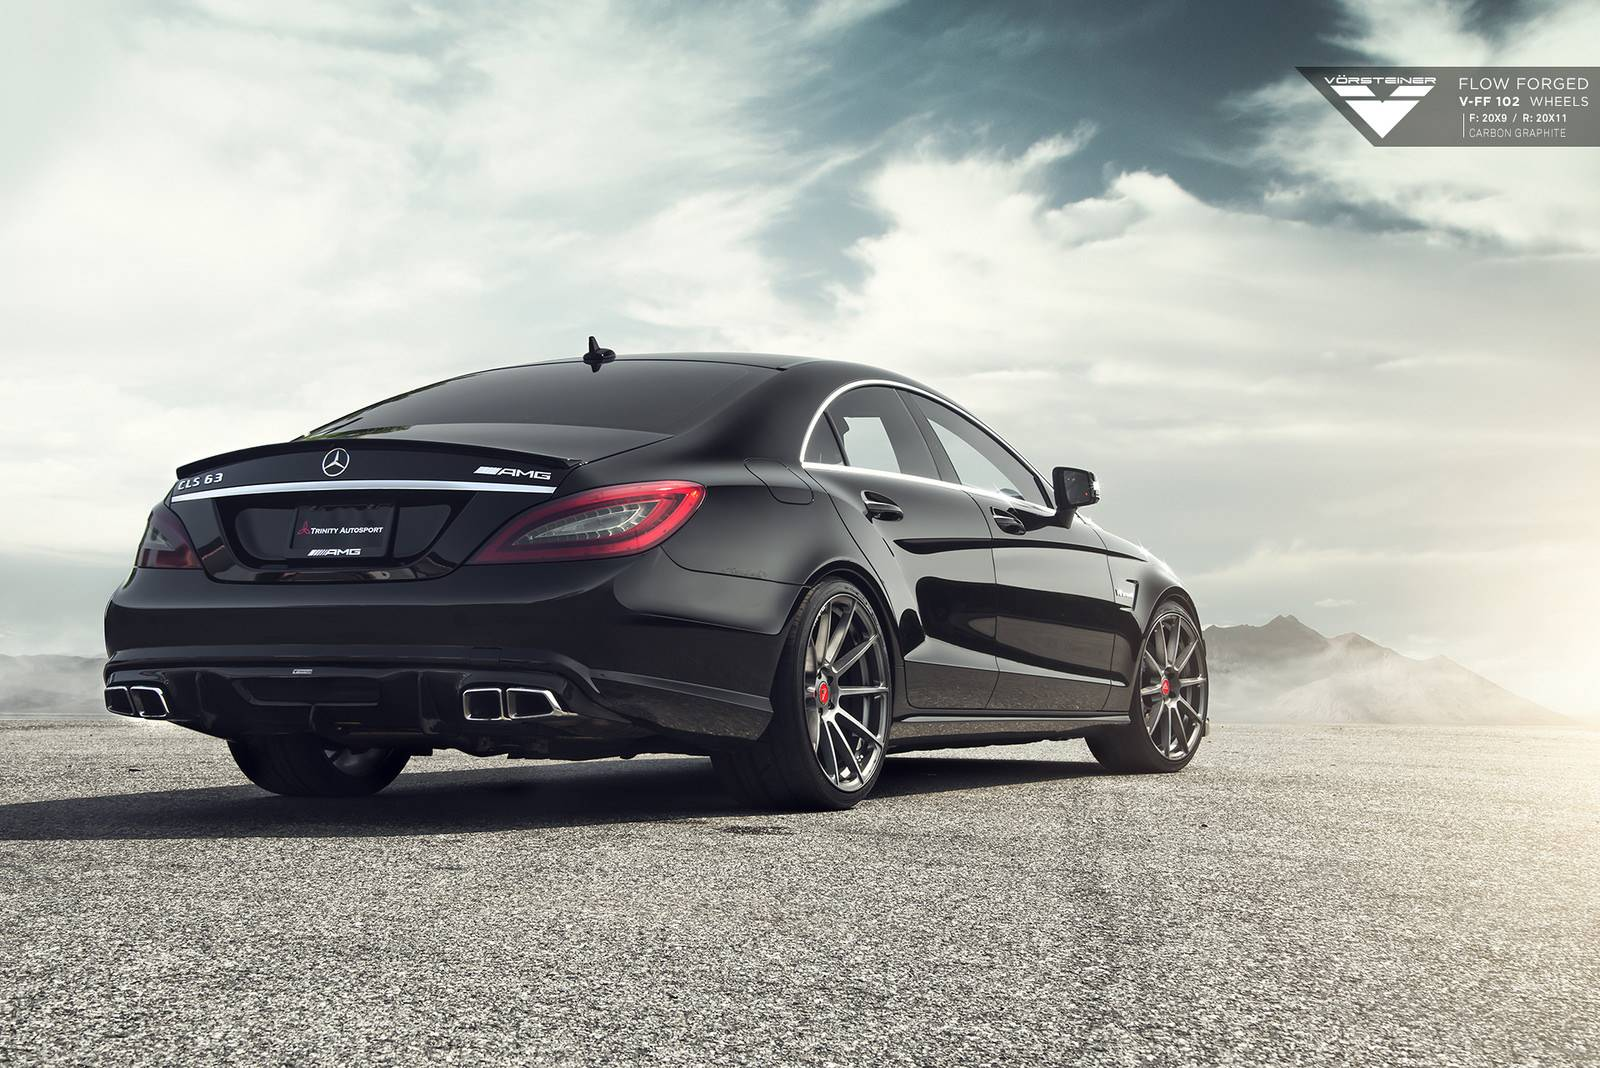 mercedes benz cls63 amg stuns on vorsteiner wheels gtspirit. Black Bedroom Furniture Sets. Home Design Ideas